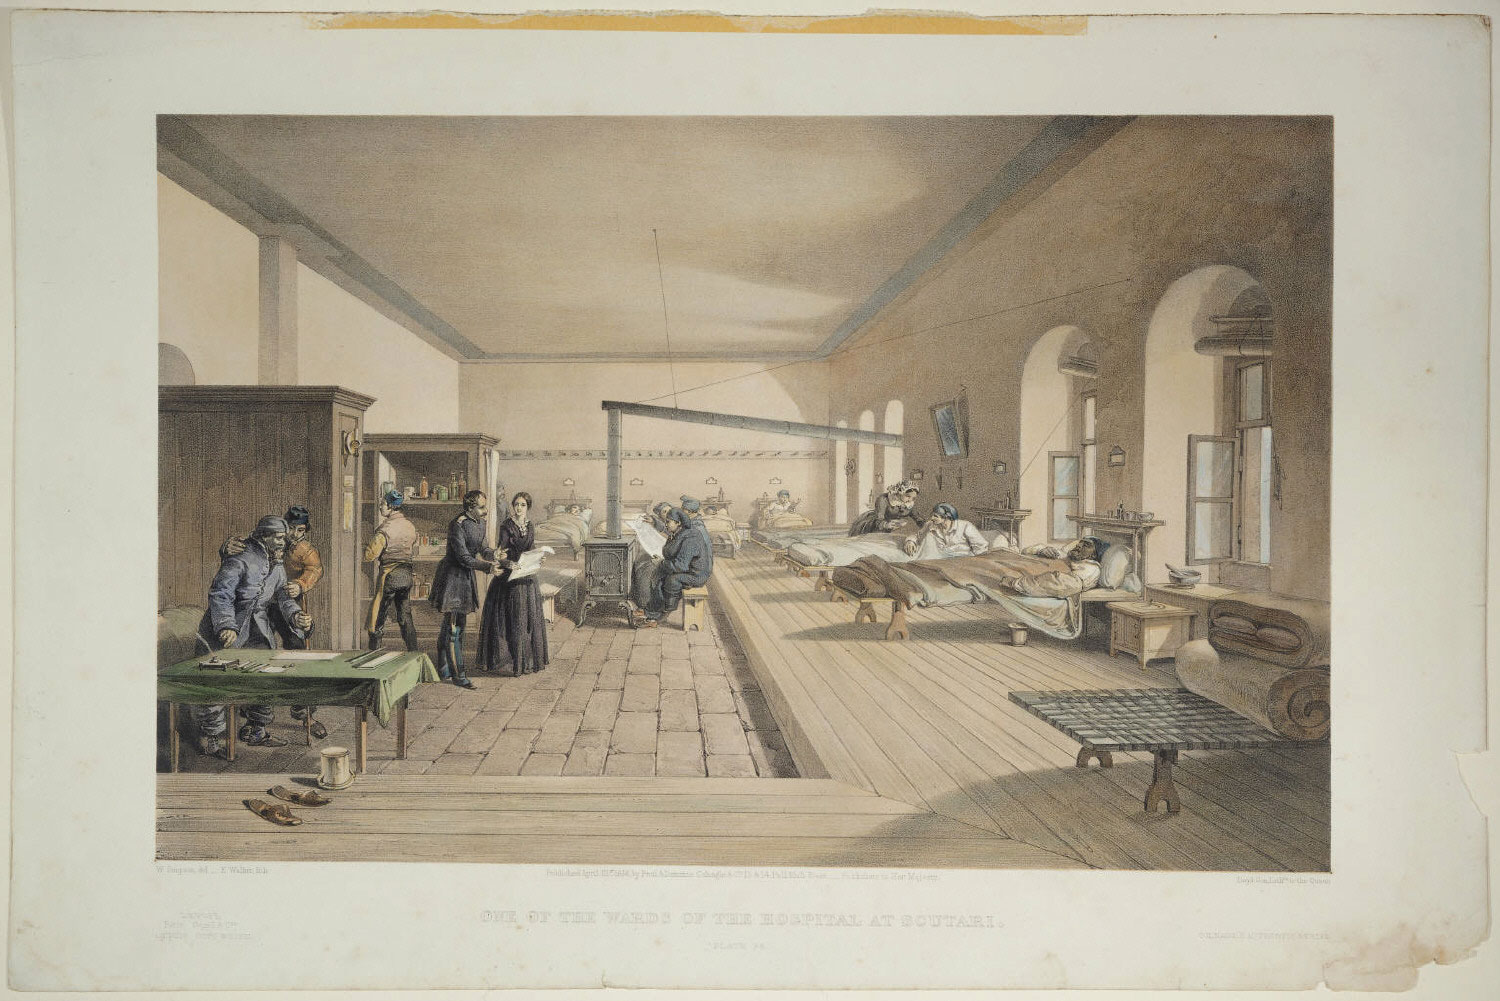 One of the Wards of the Hospital at Scutari